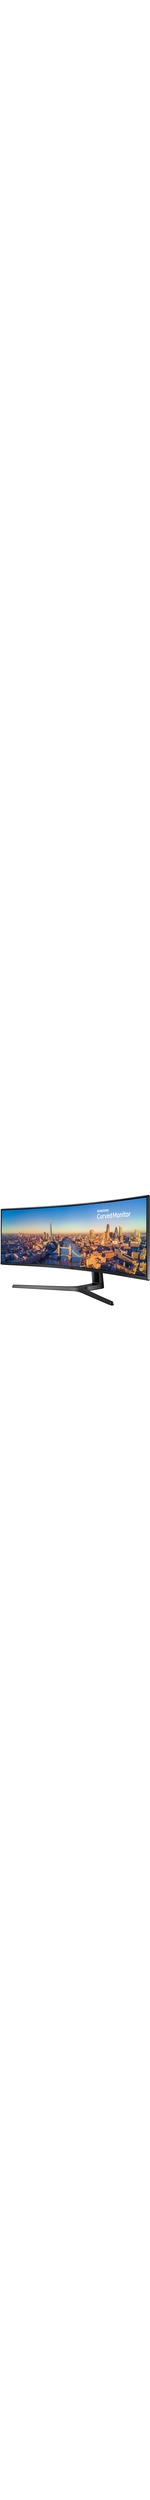 Samsung C49J890DKU 48.9And#34; Curved  LED LCD Monitor - 32:9 - 5 ms GTG